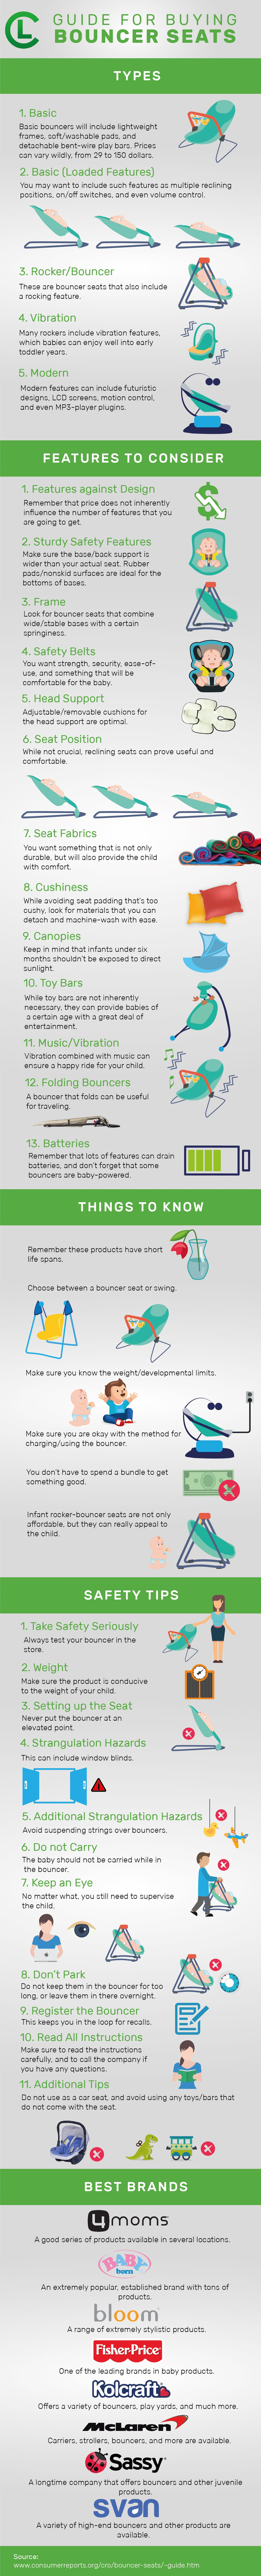 Guide For Buying Baby Bouncers Infographic